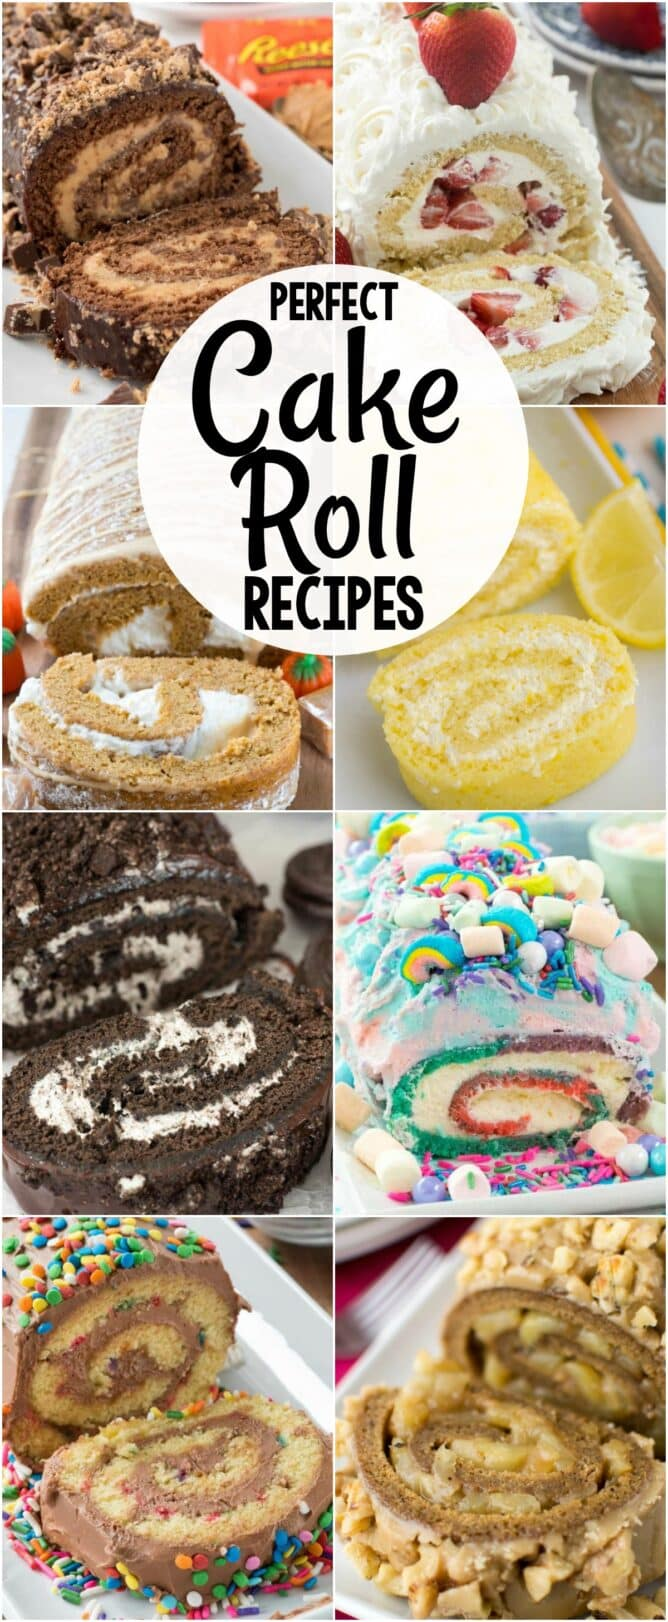 Collage of All of my favorite EASY Cake Roll Recipes in one place! Chocolate, lemon, pumpkin, red velvet - every cake you love can be made into a cake roll.